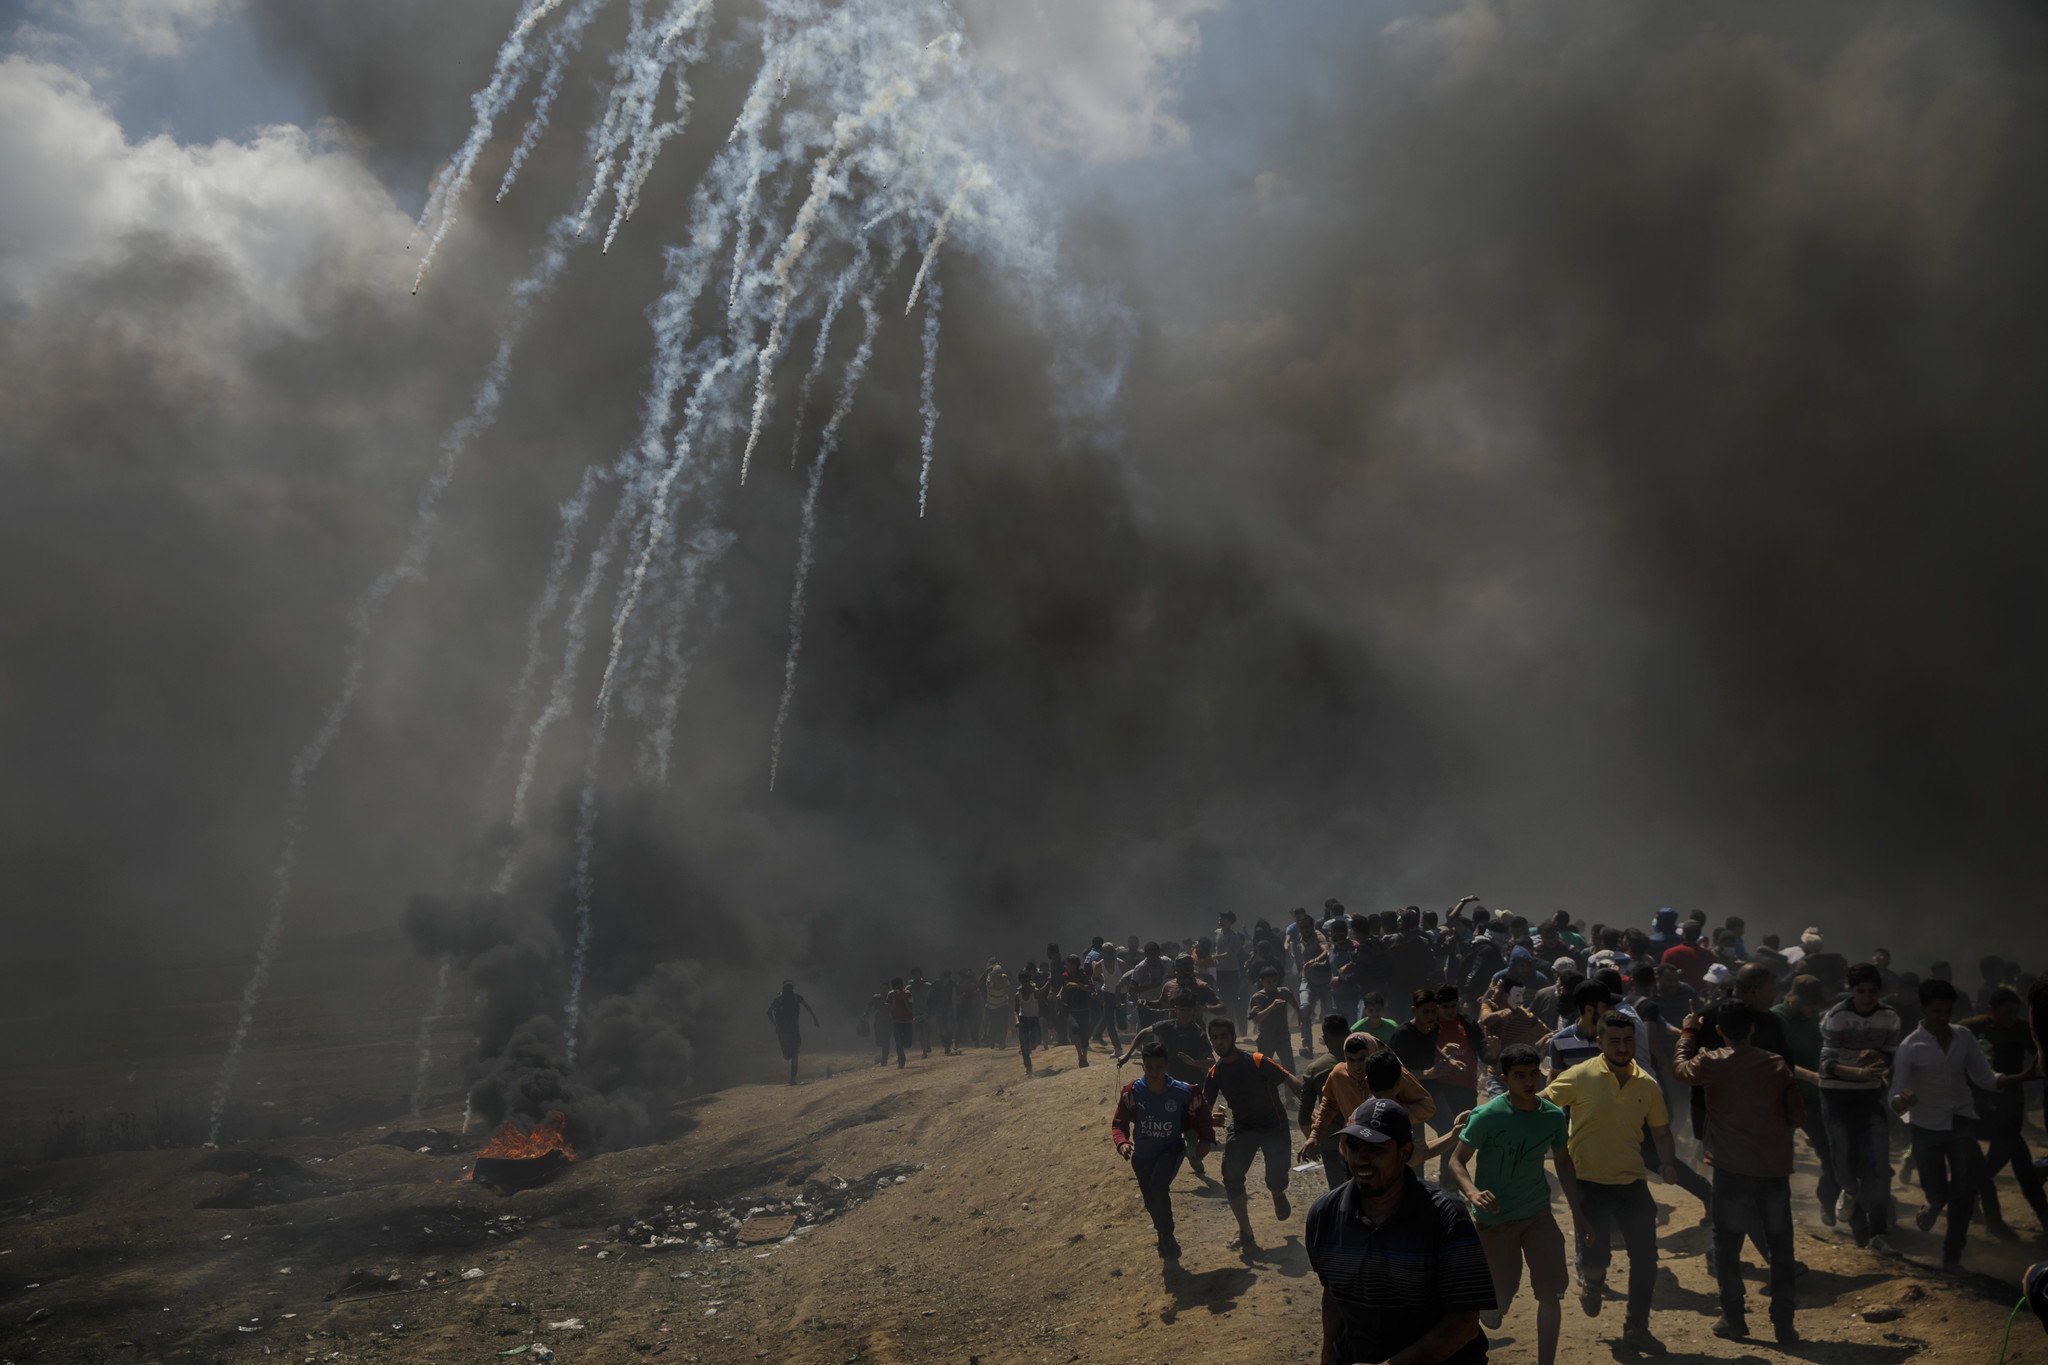 GAZA CITY, GAZA — MONDAY, MAY 14, 2018: Protesters run away from tear gas dispersed by Israeli forc